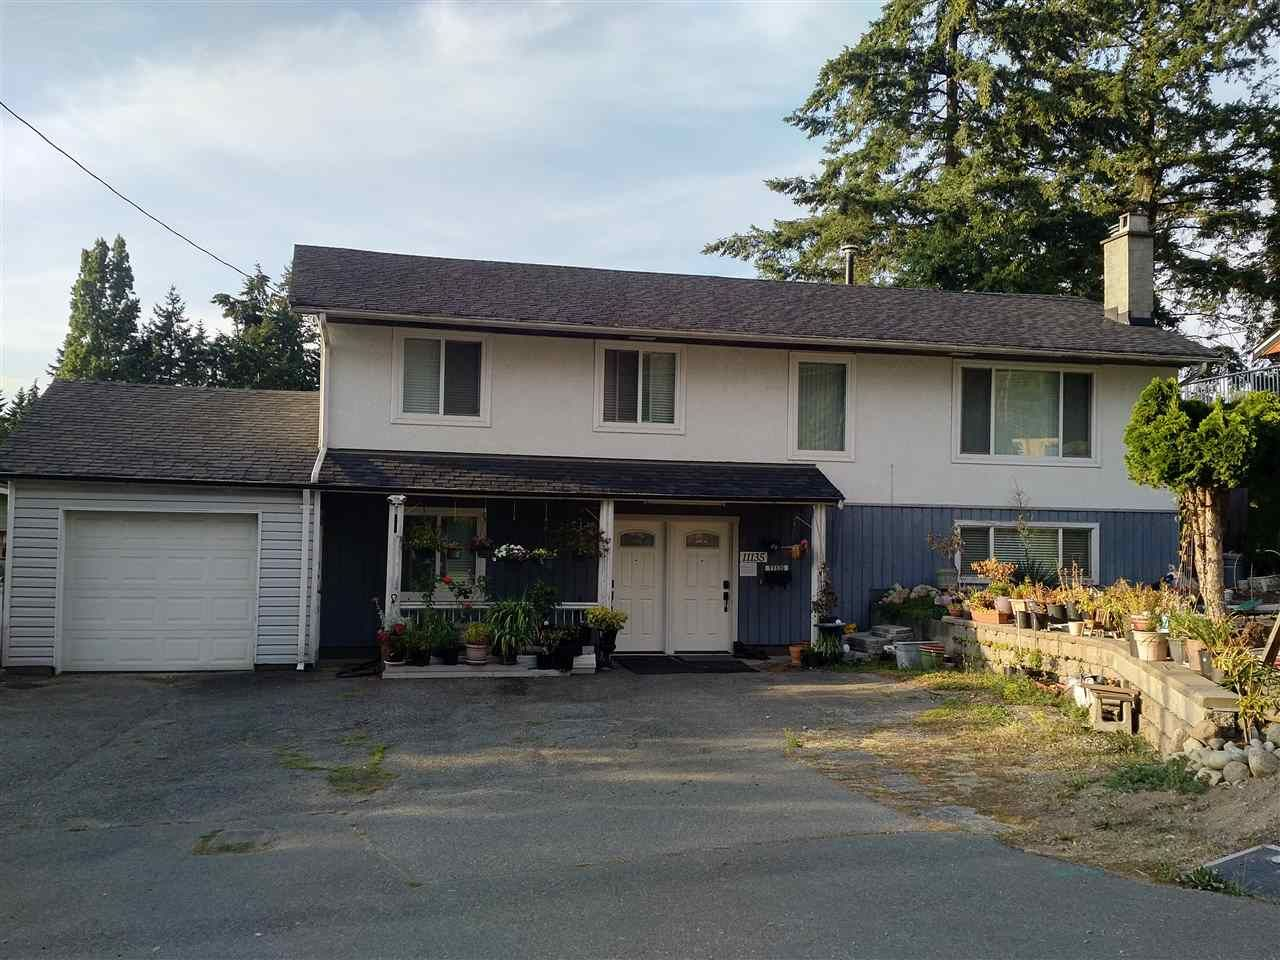 Main Photo: 11135 72 Avenue in Delta: Nordel House for sale (N. Delta)  : MLS®# R2298951